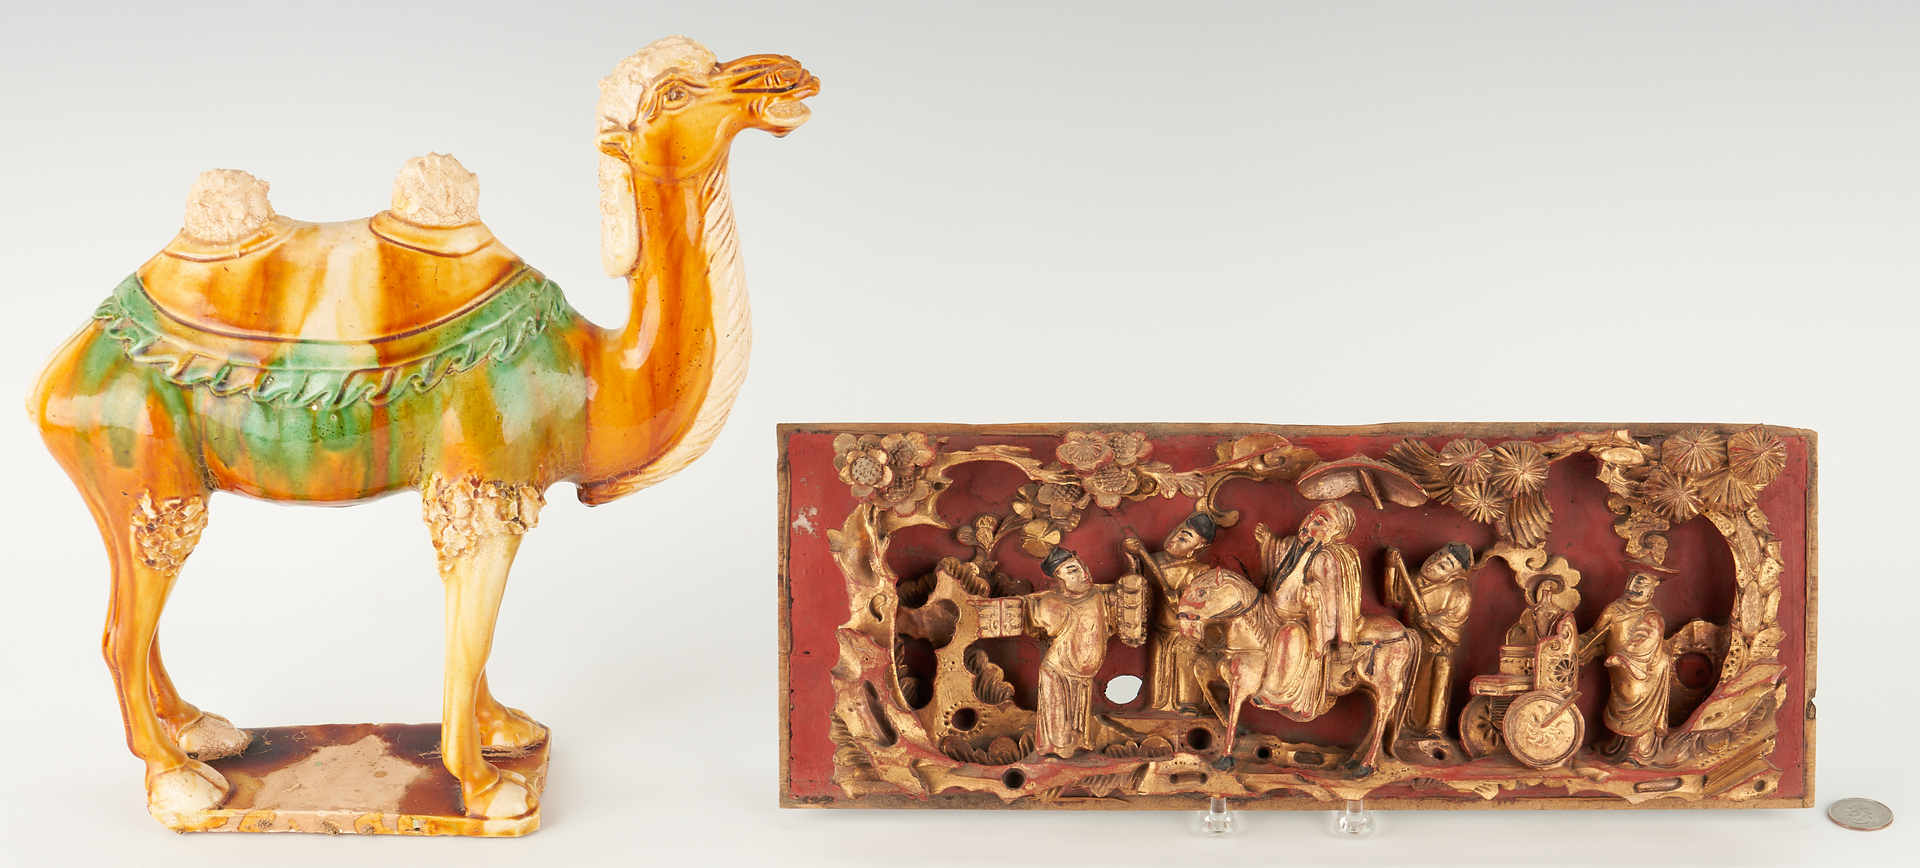 Lot 1199: Chinese Sancai Camel & Carved Giltwood Panel, 2 items